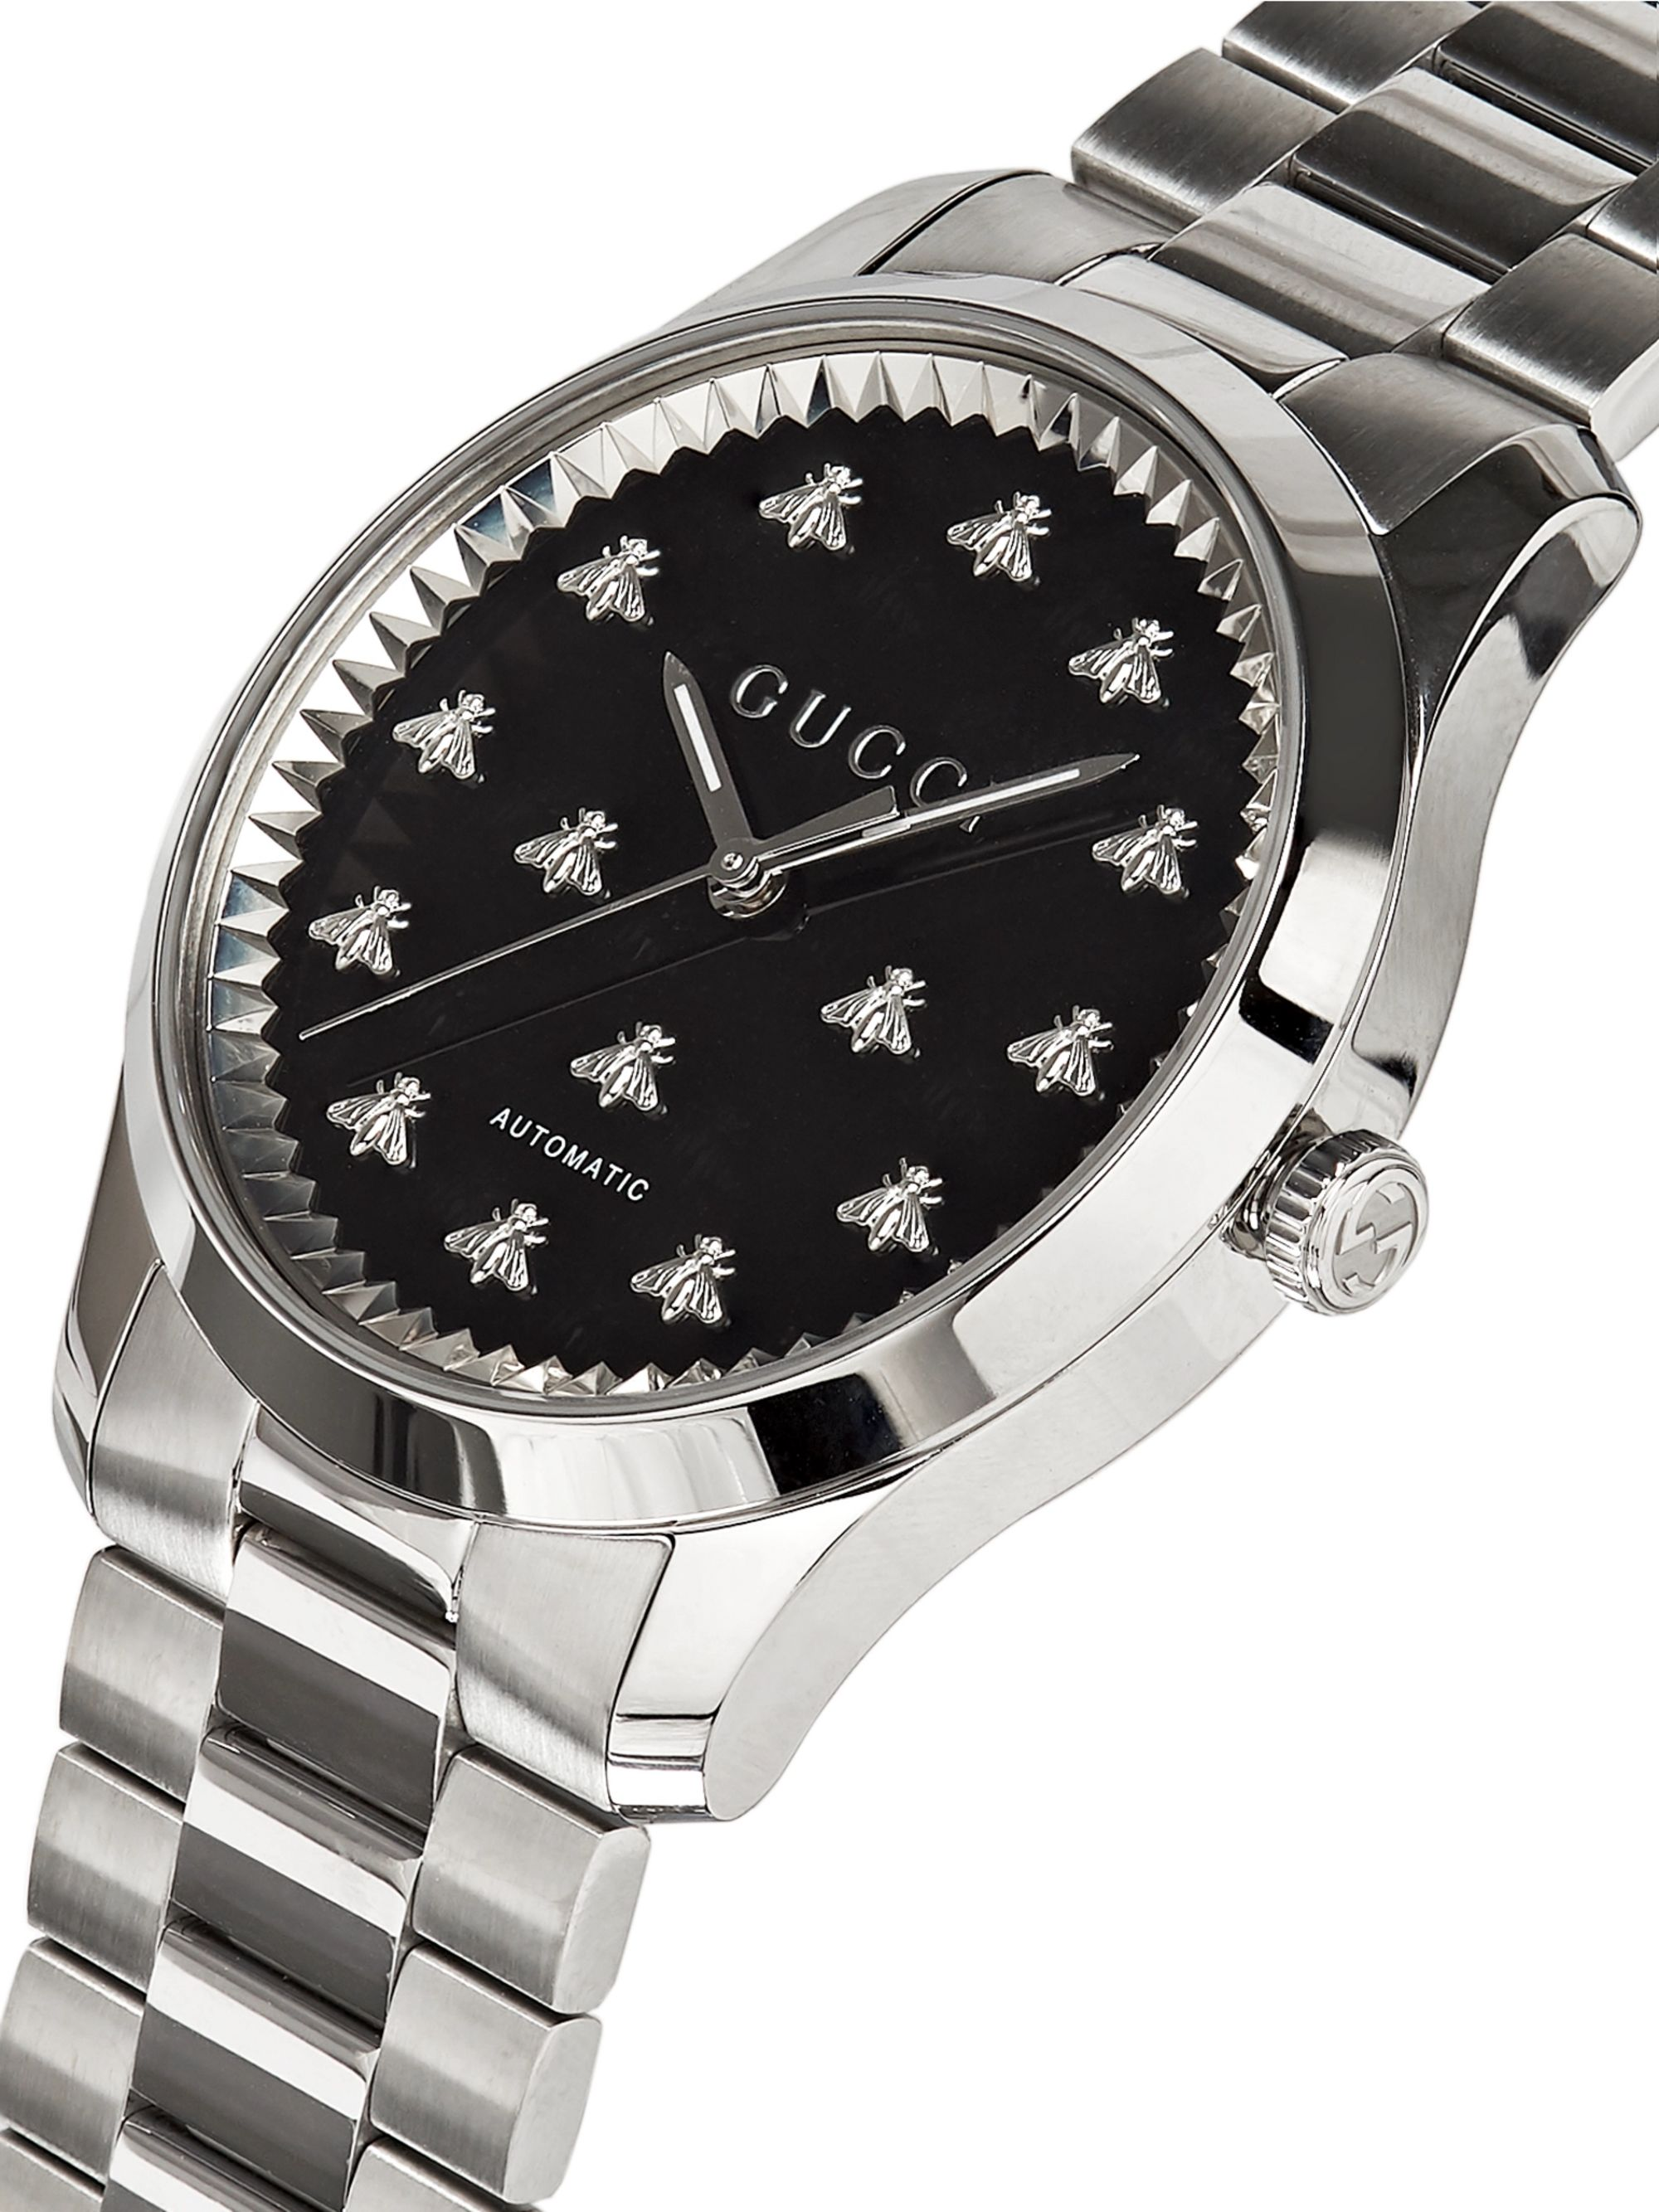 Gucci G-Timeless 42mm Stainless Steel Watch